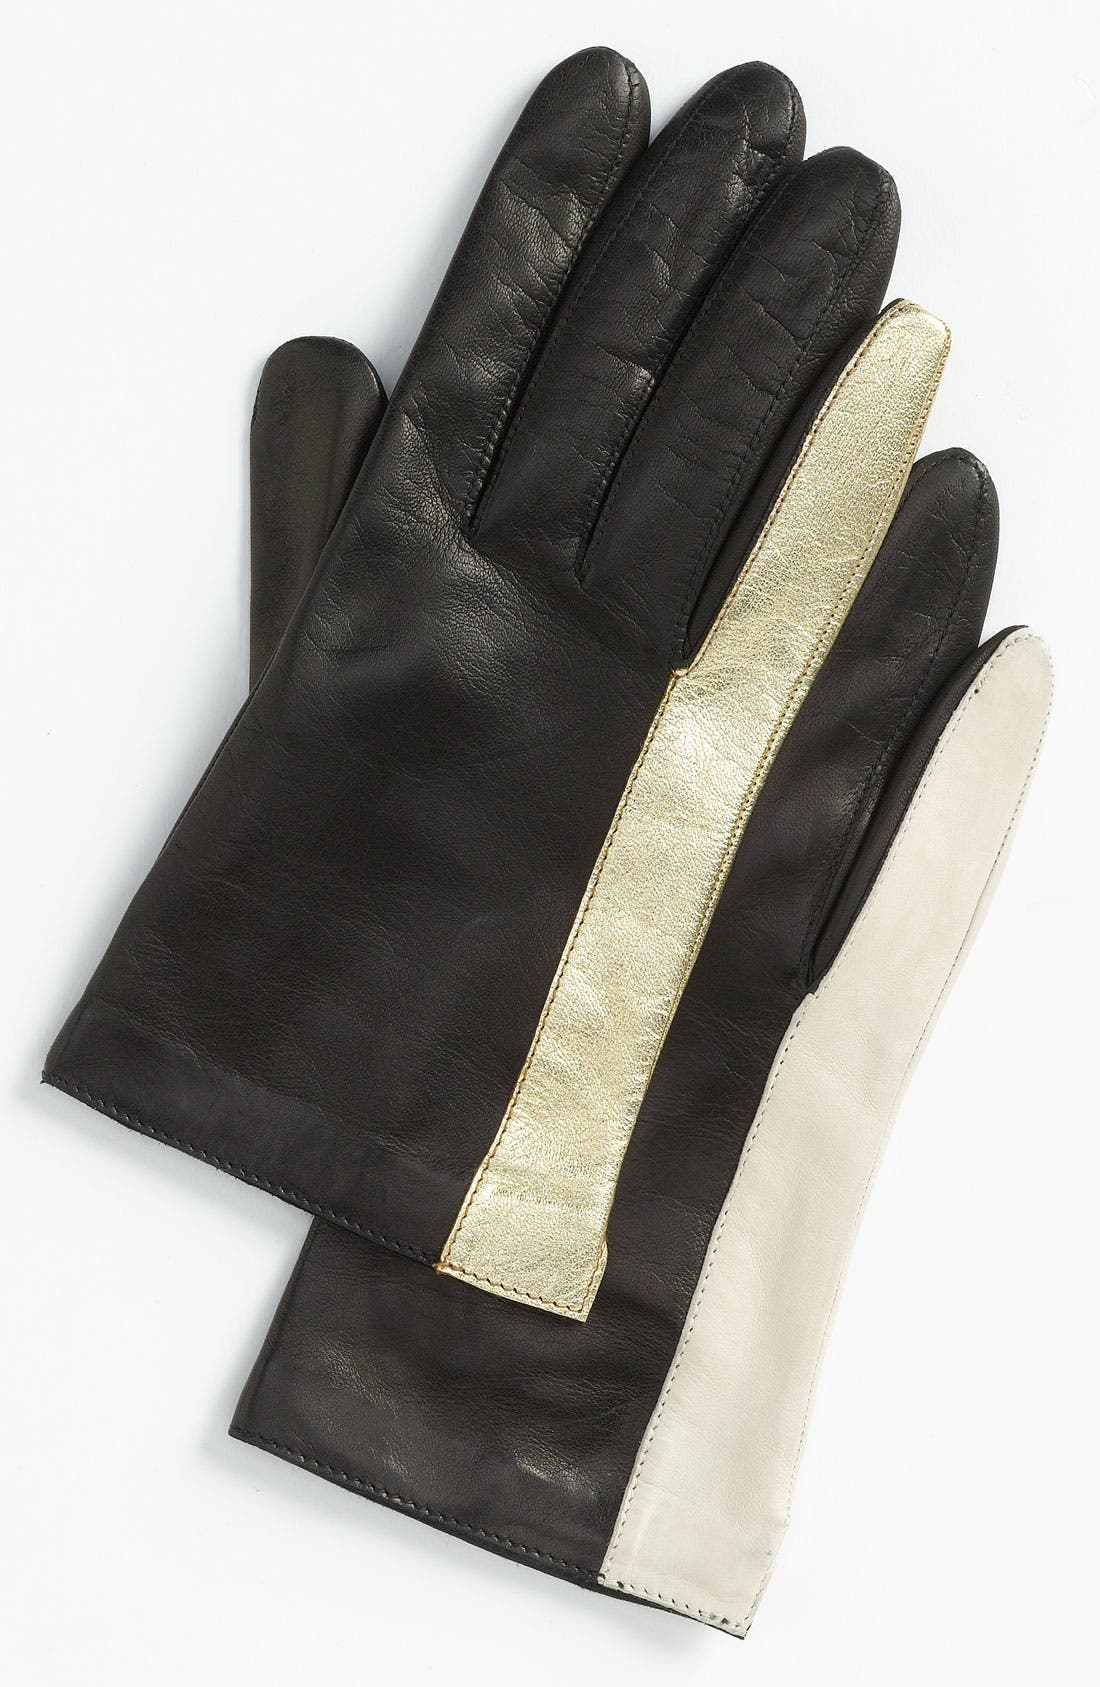 Alternate Image 1 Selected - Diane von Furstenberg Colorblock Leather Gloves